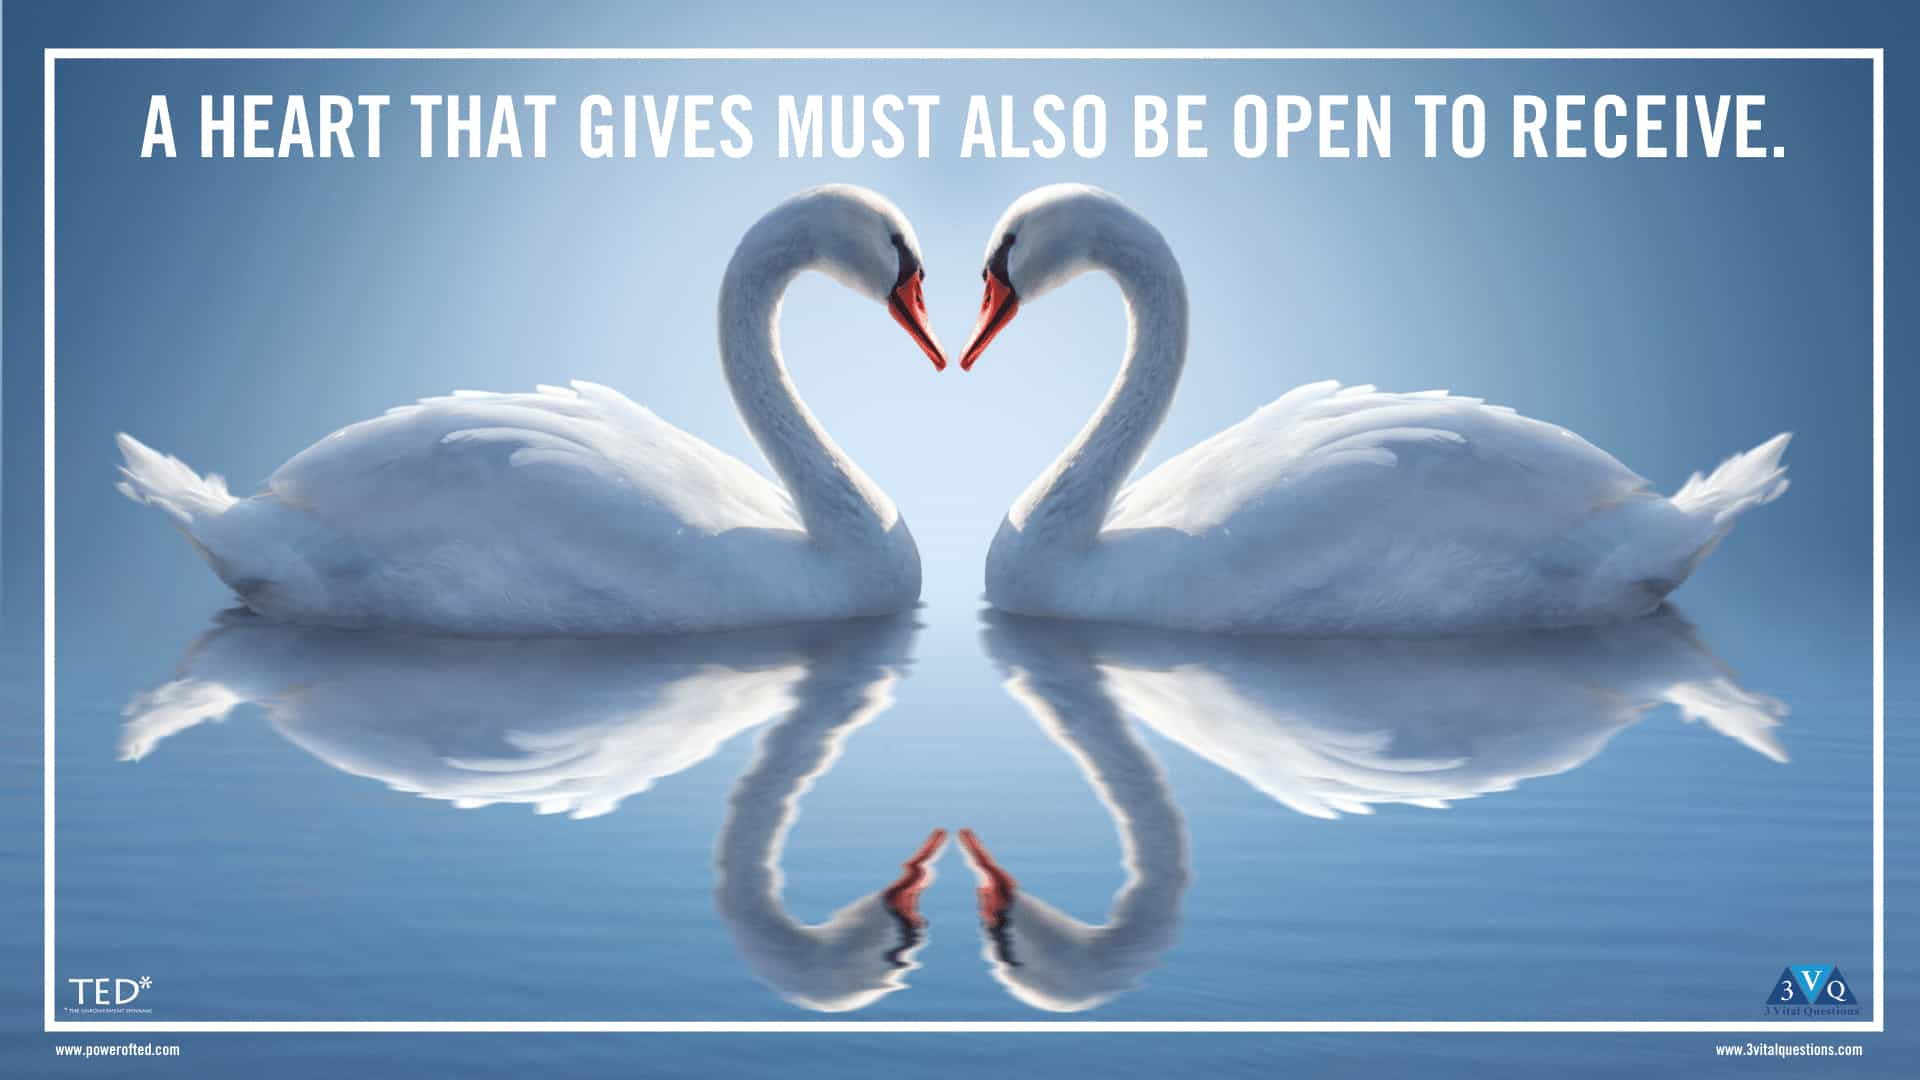 Hearts that give must also be open to receive.